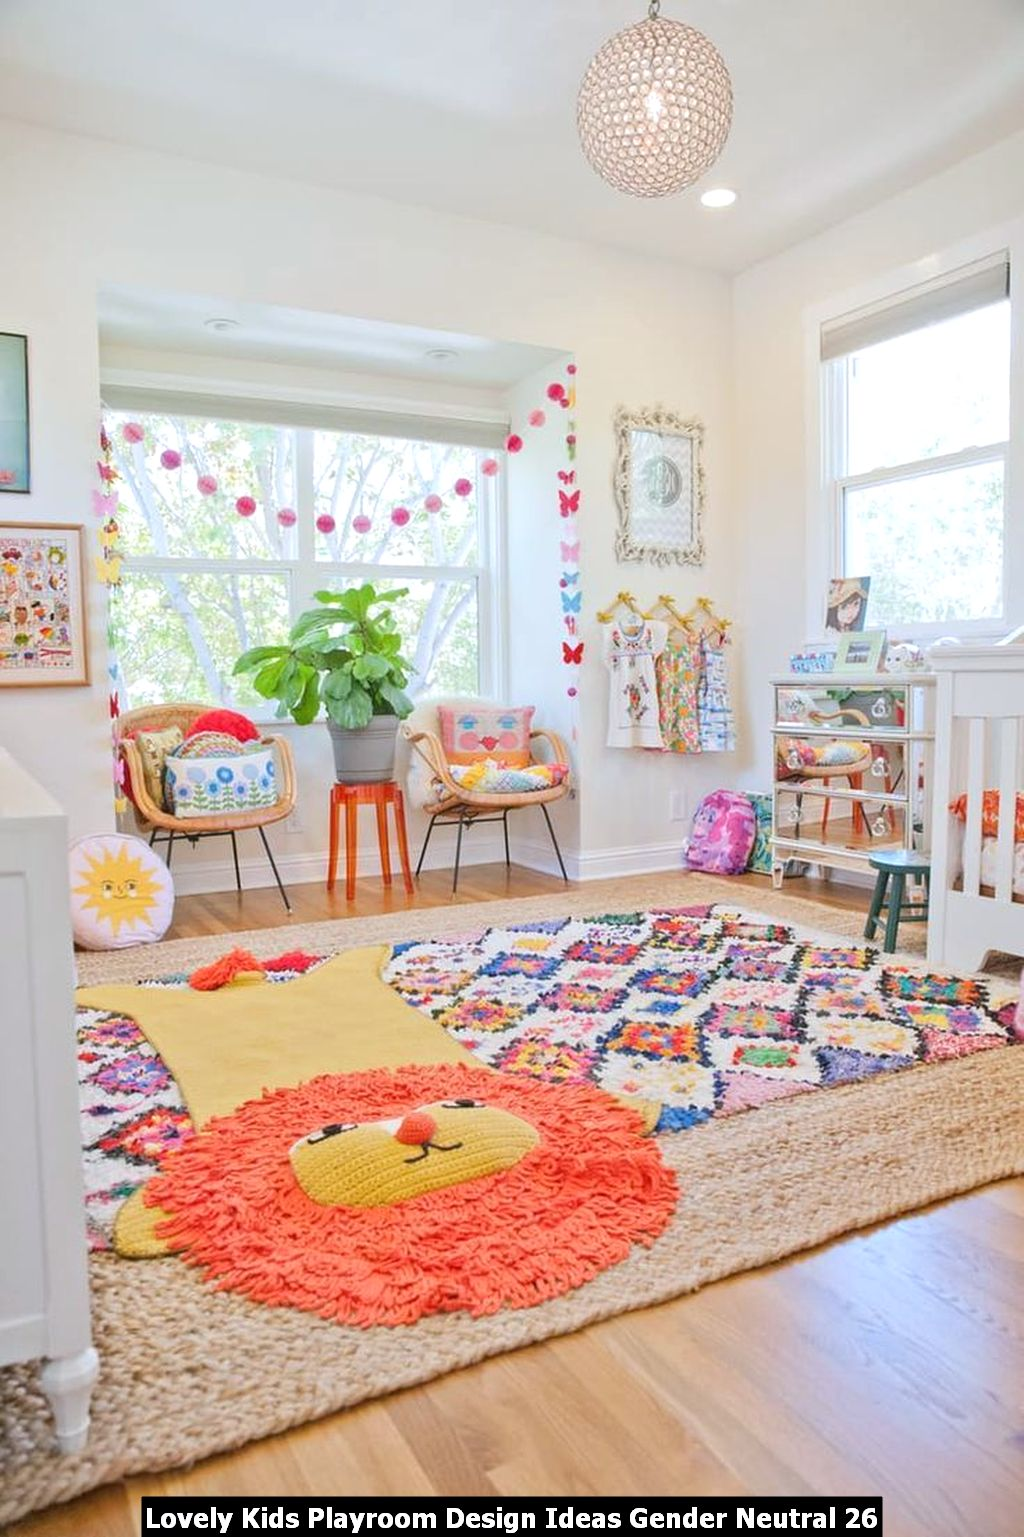 Lovely Kids Playroom Design Ideas Gender Neutral 26